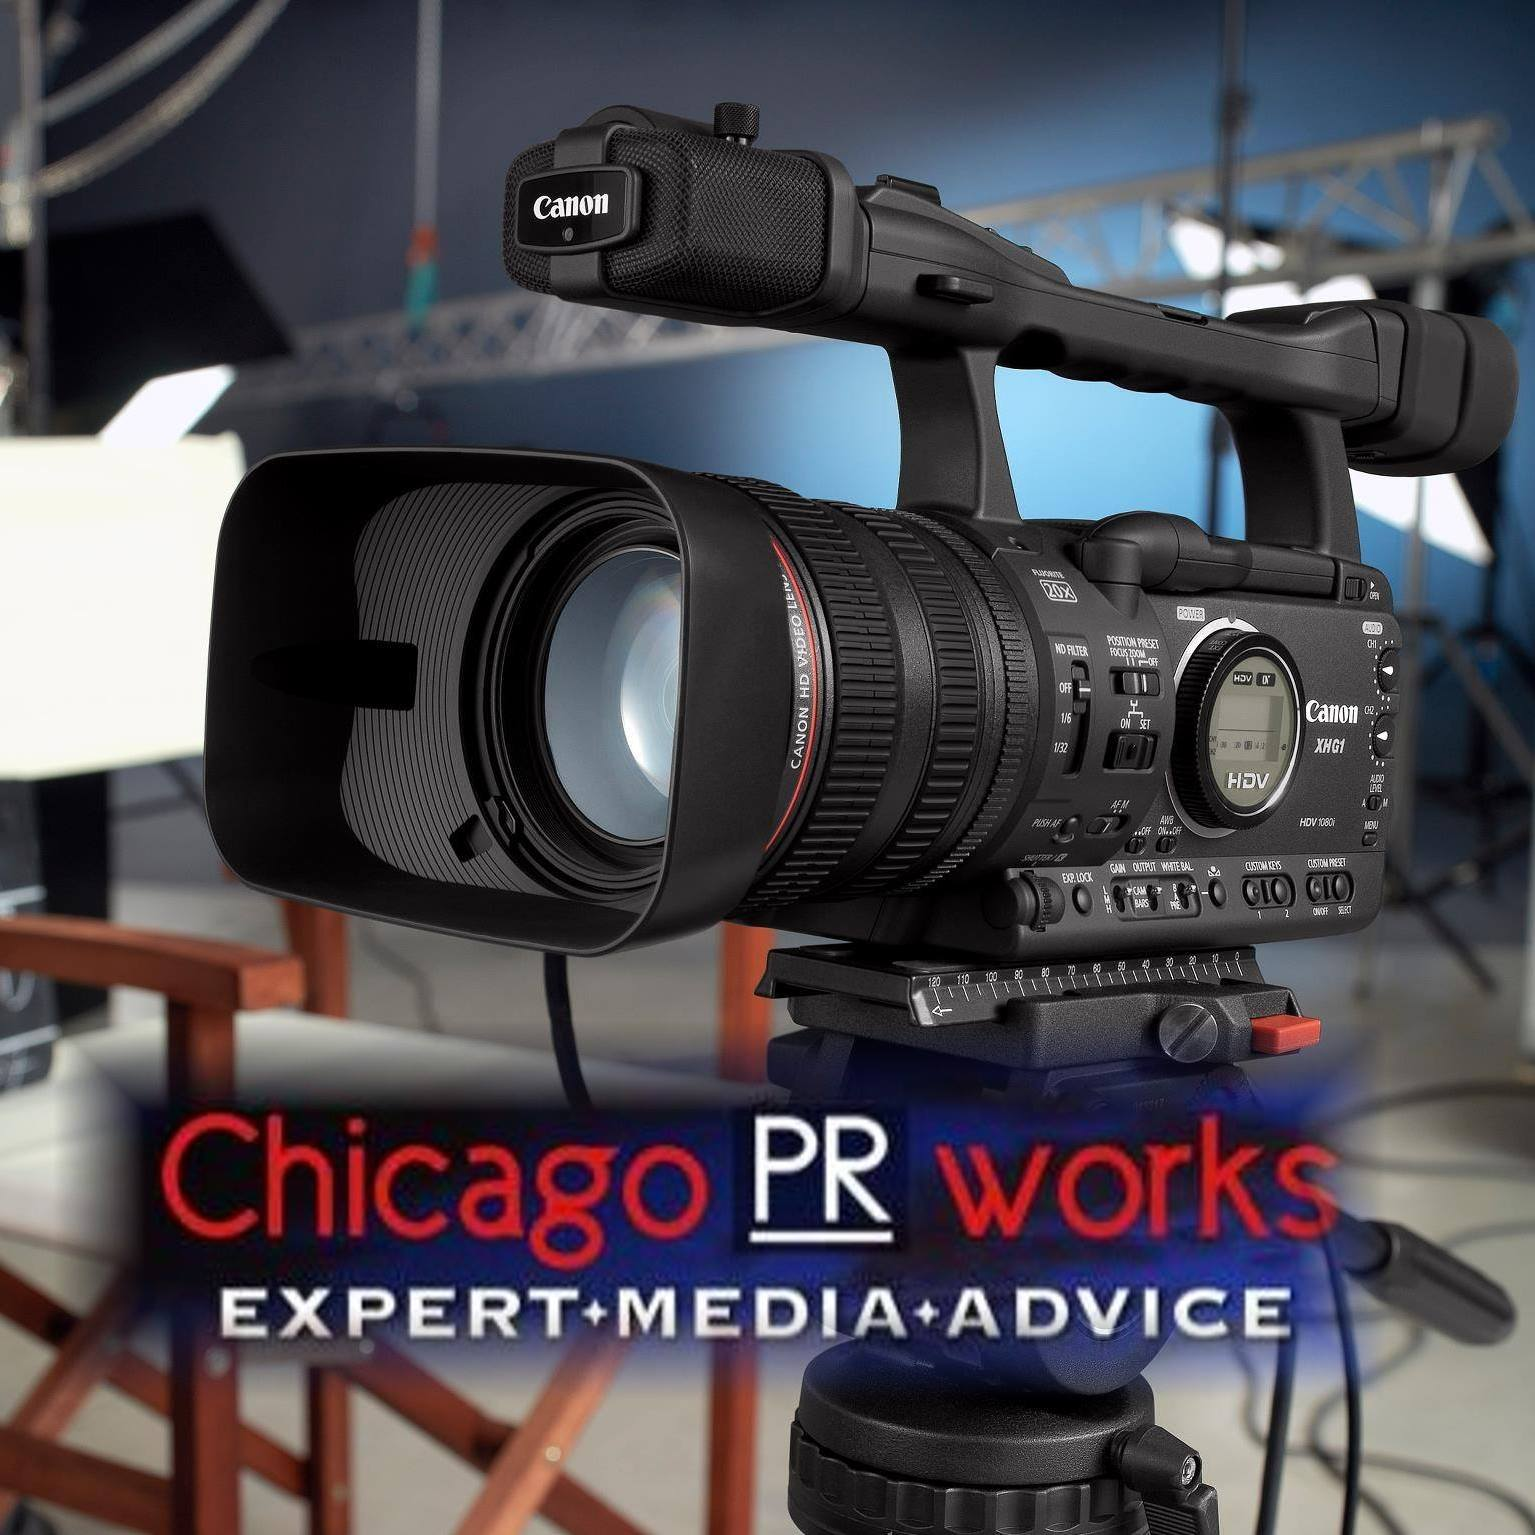 Chicago PR Works